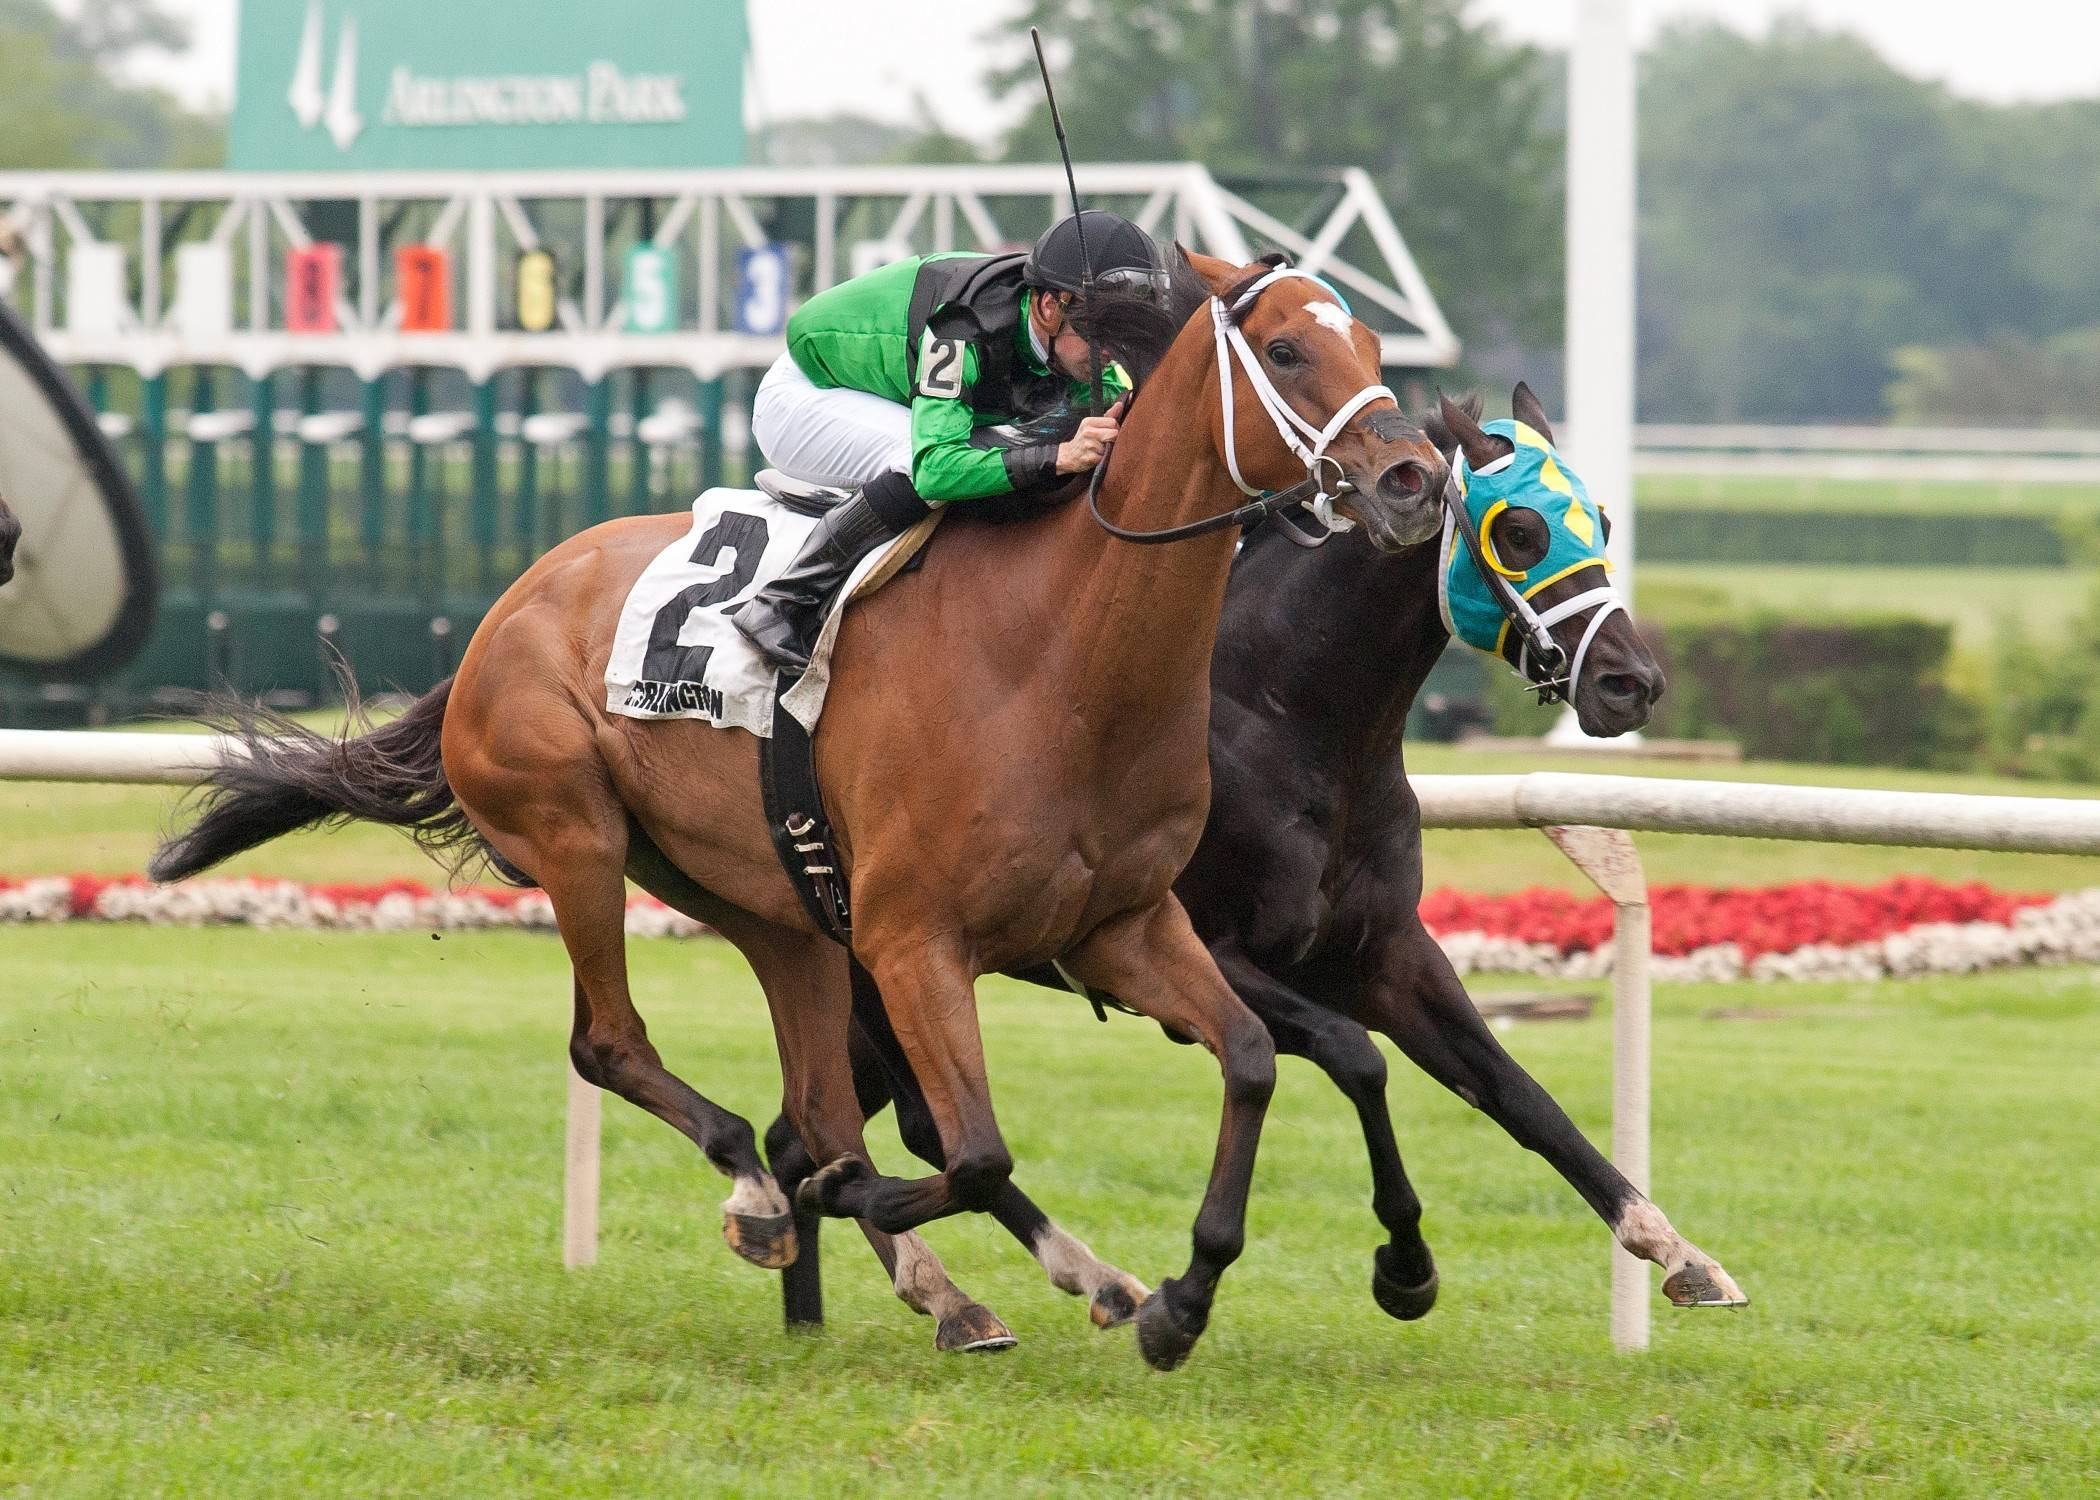 Will Illinois-bred The Pizza Man deliver in Arlington Million?